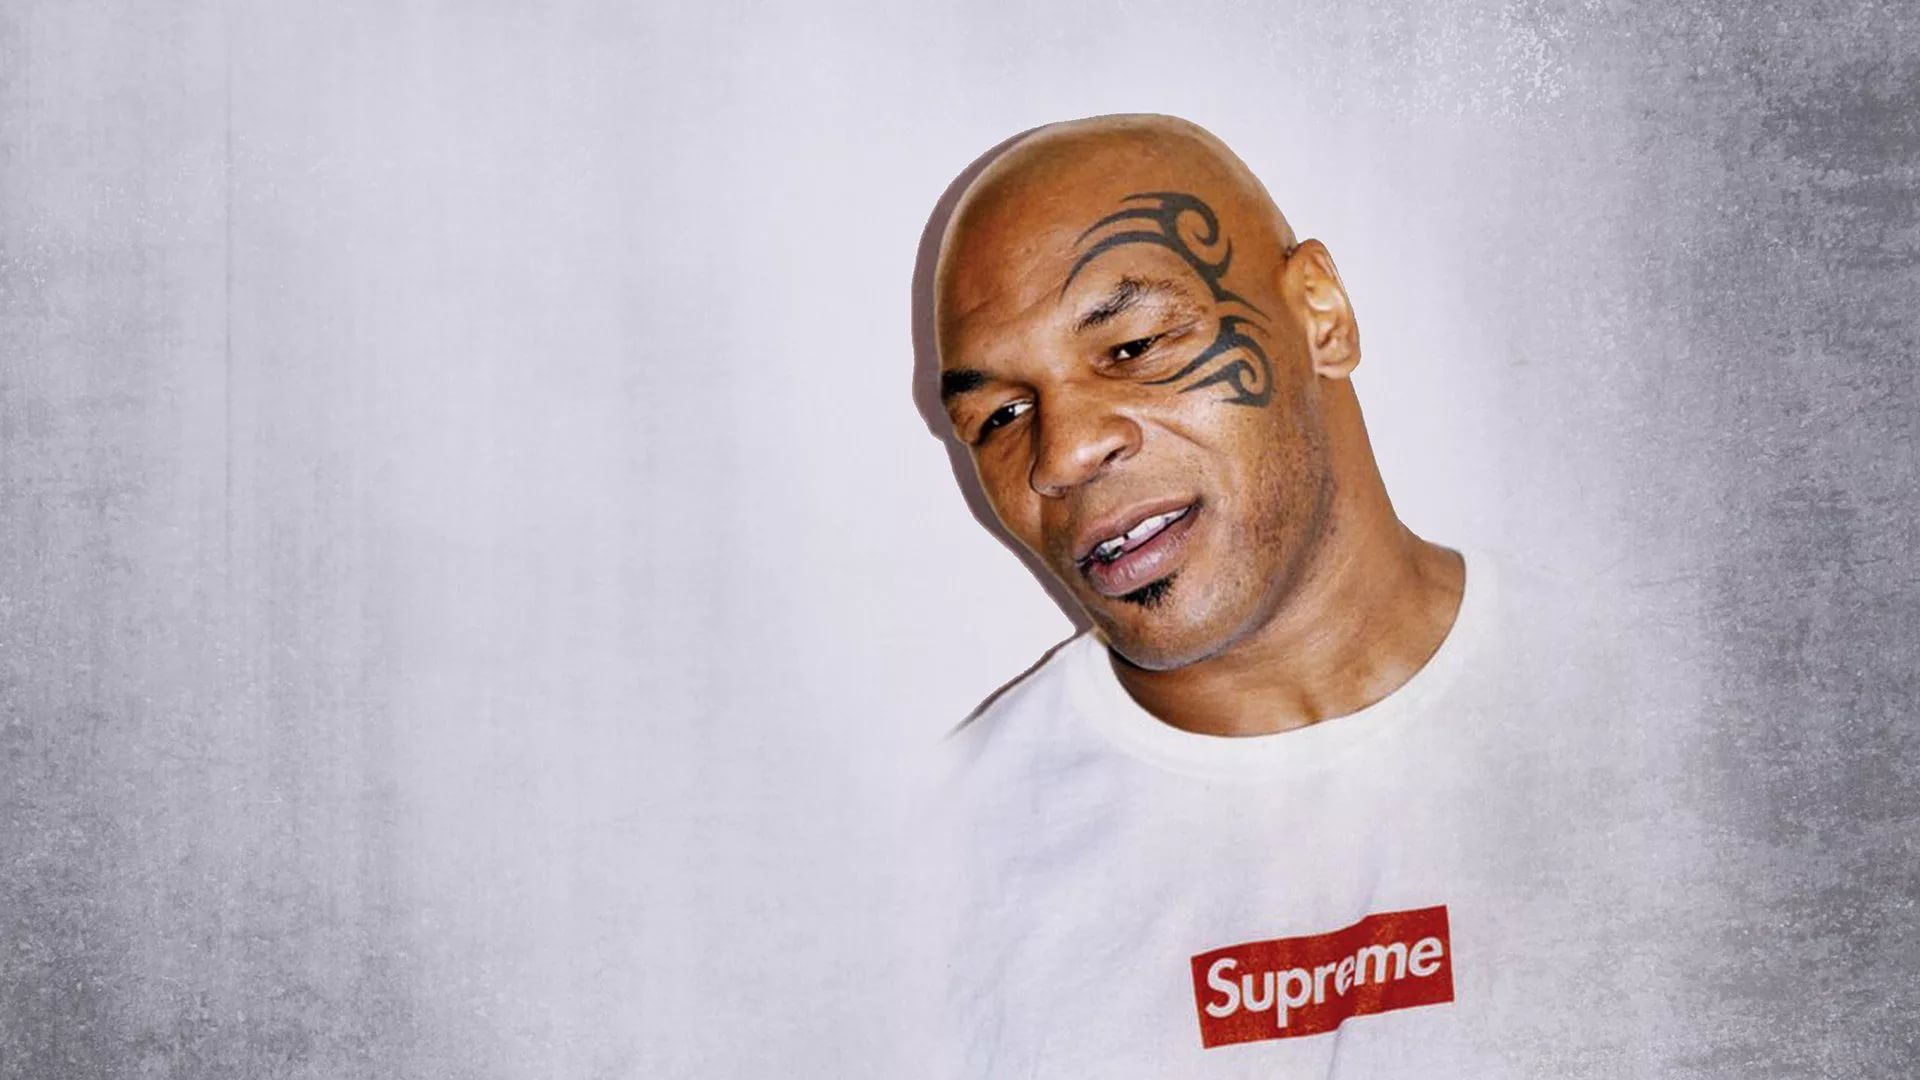 Mike Tyson full screen hd wallpaper